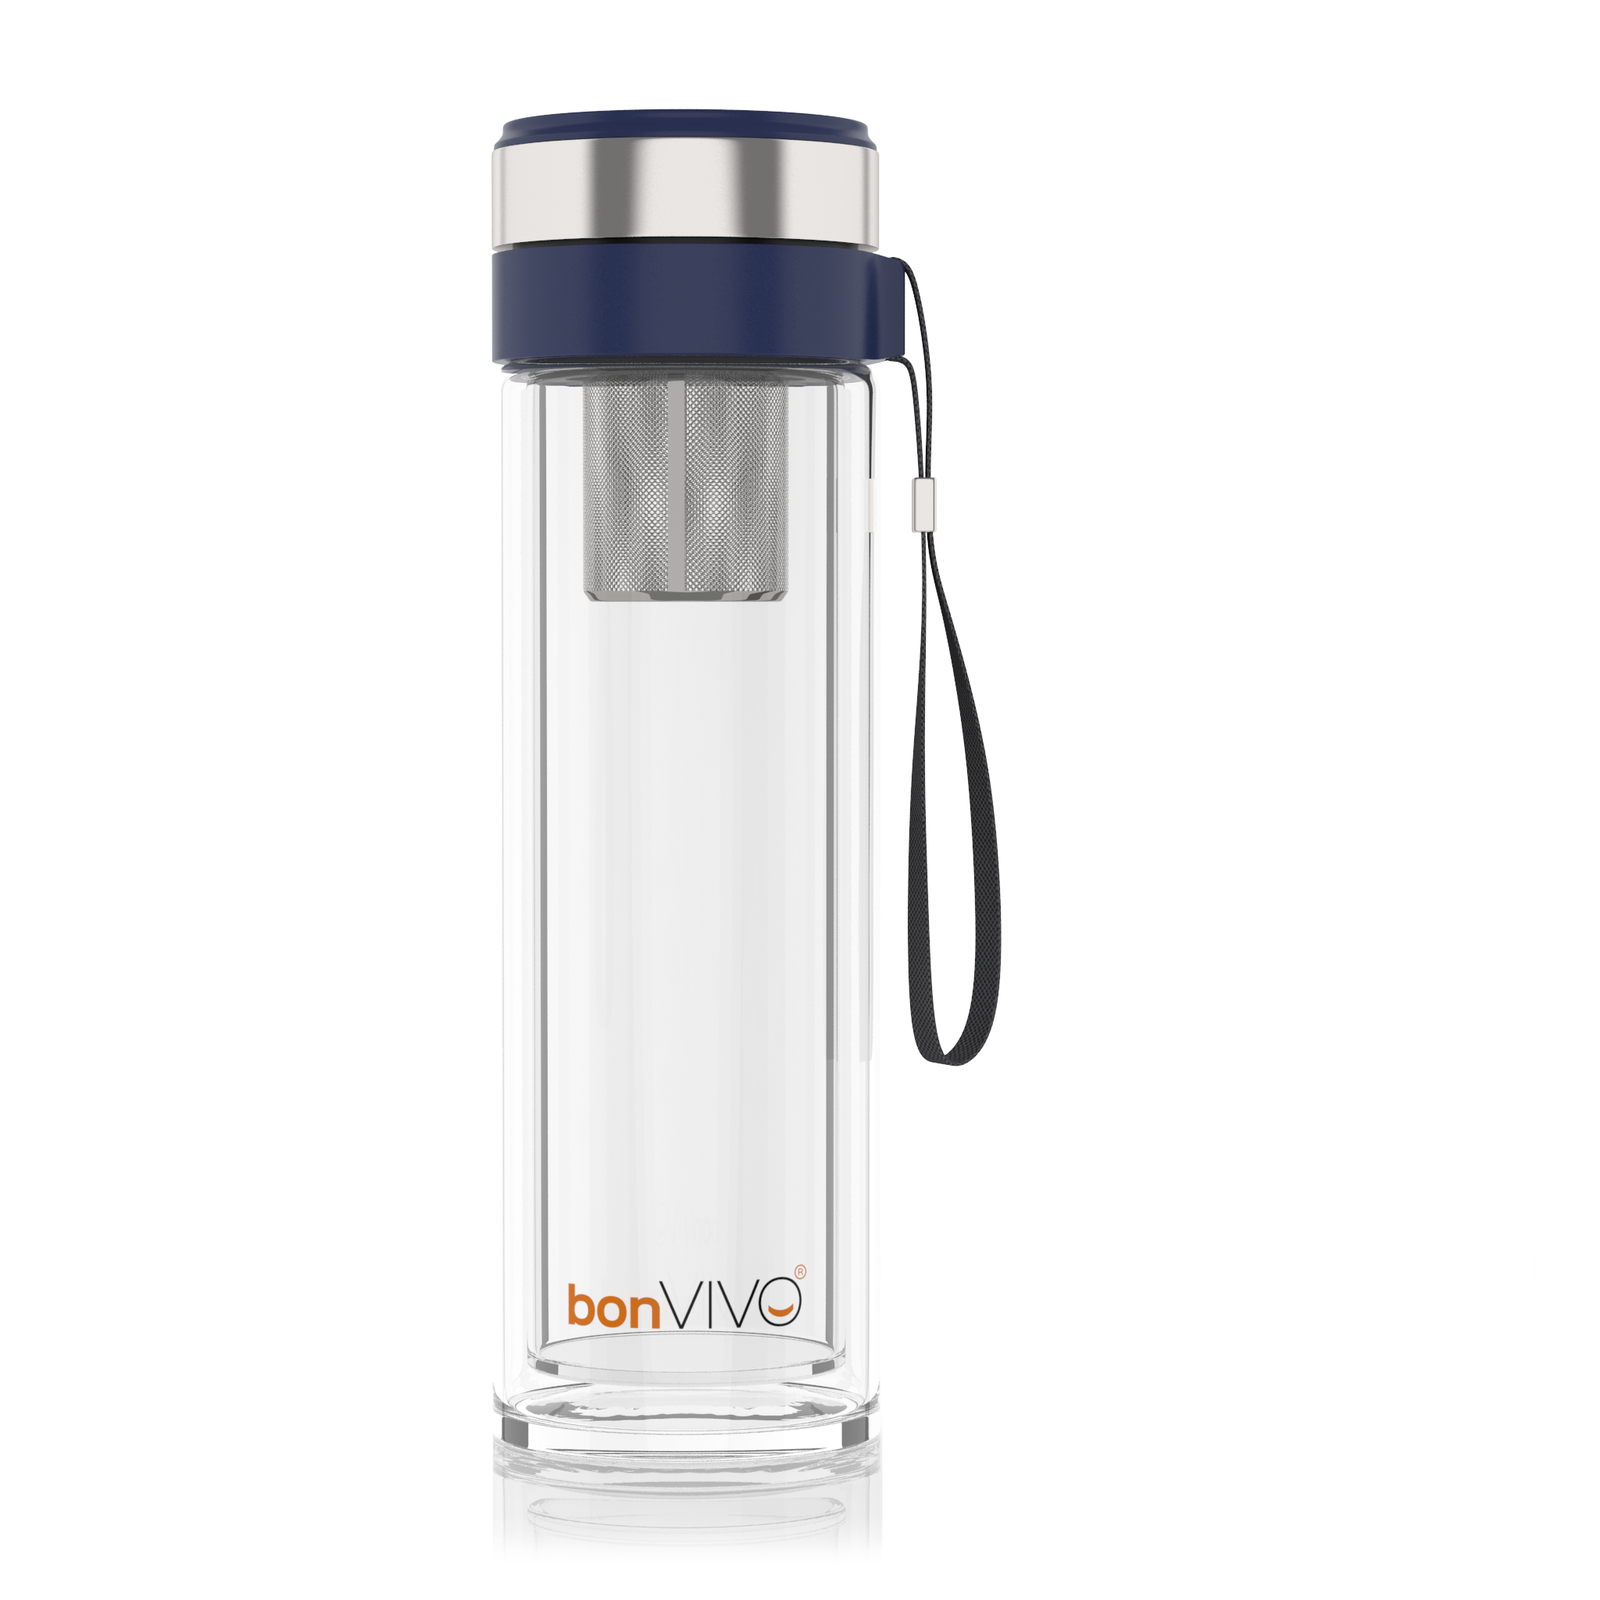 bonvivo Glas-Trinkflasche für Smoothies & Tee, Thermo-Funktion, Tea-Filter 0,45l